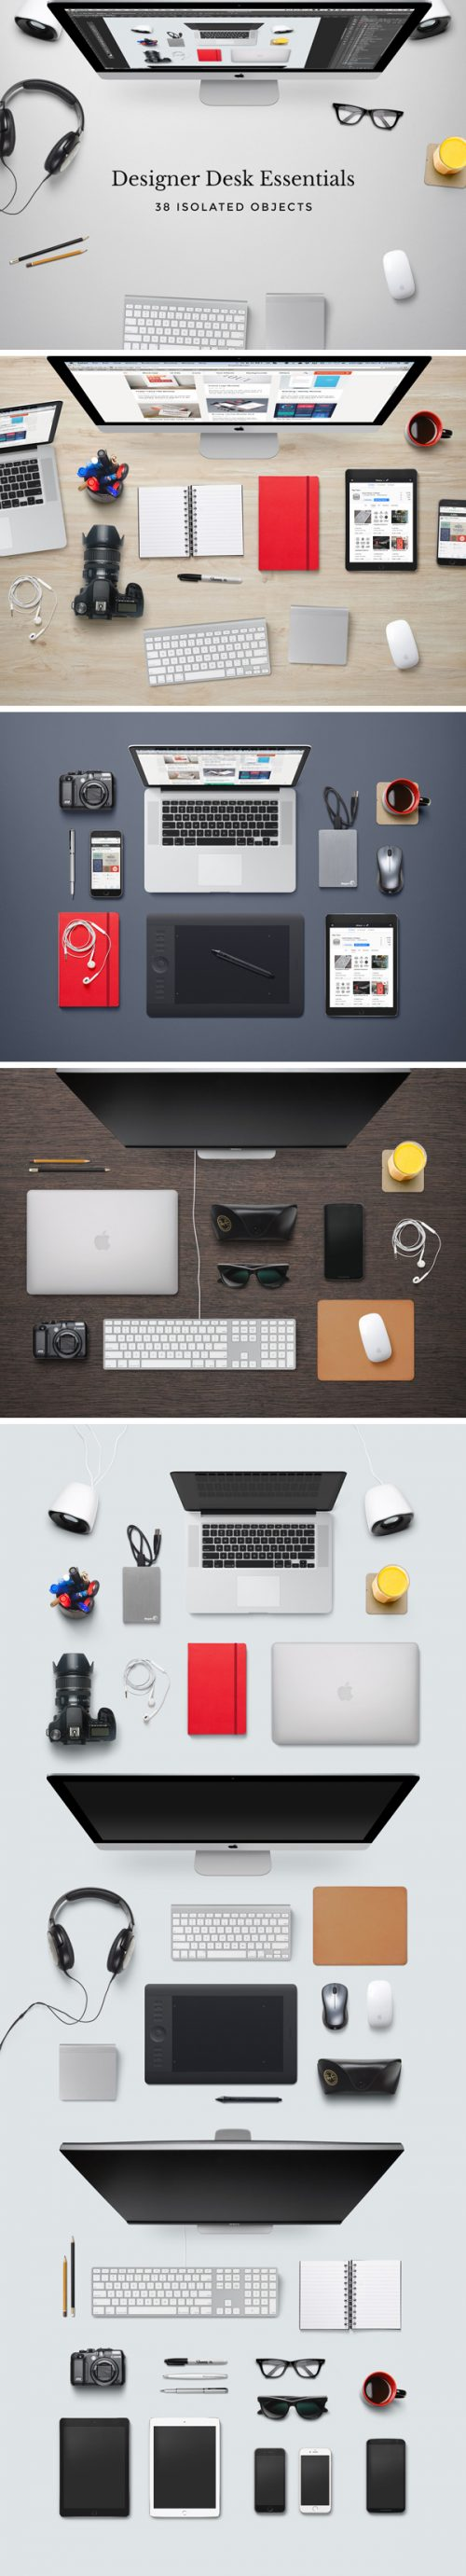 Asset | Designer Desk Essentials